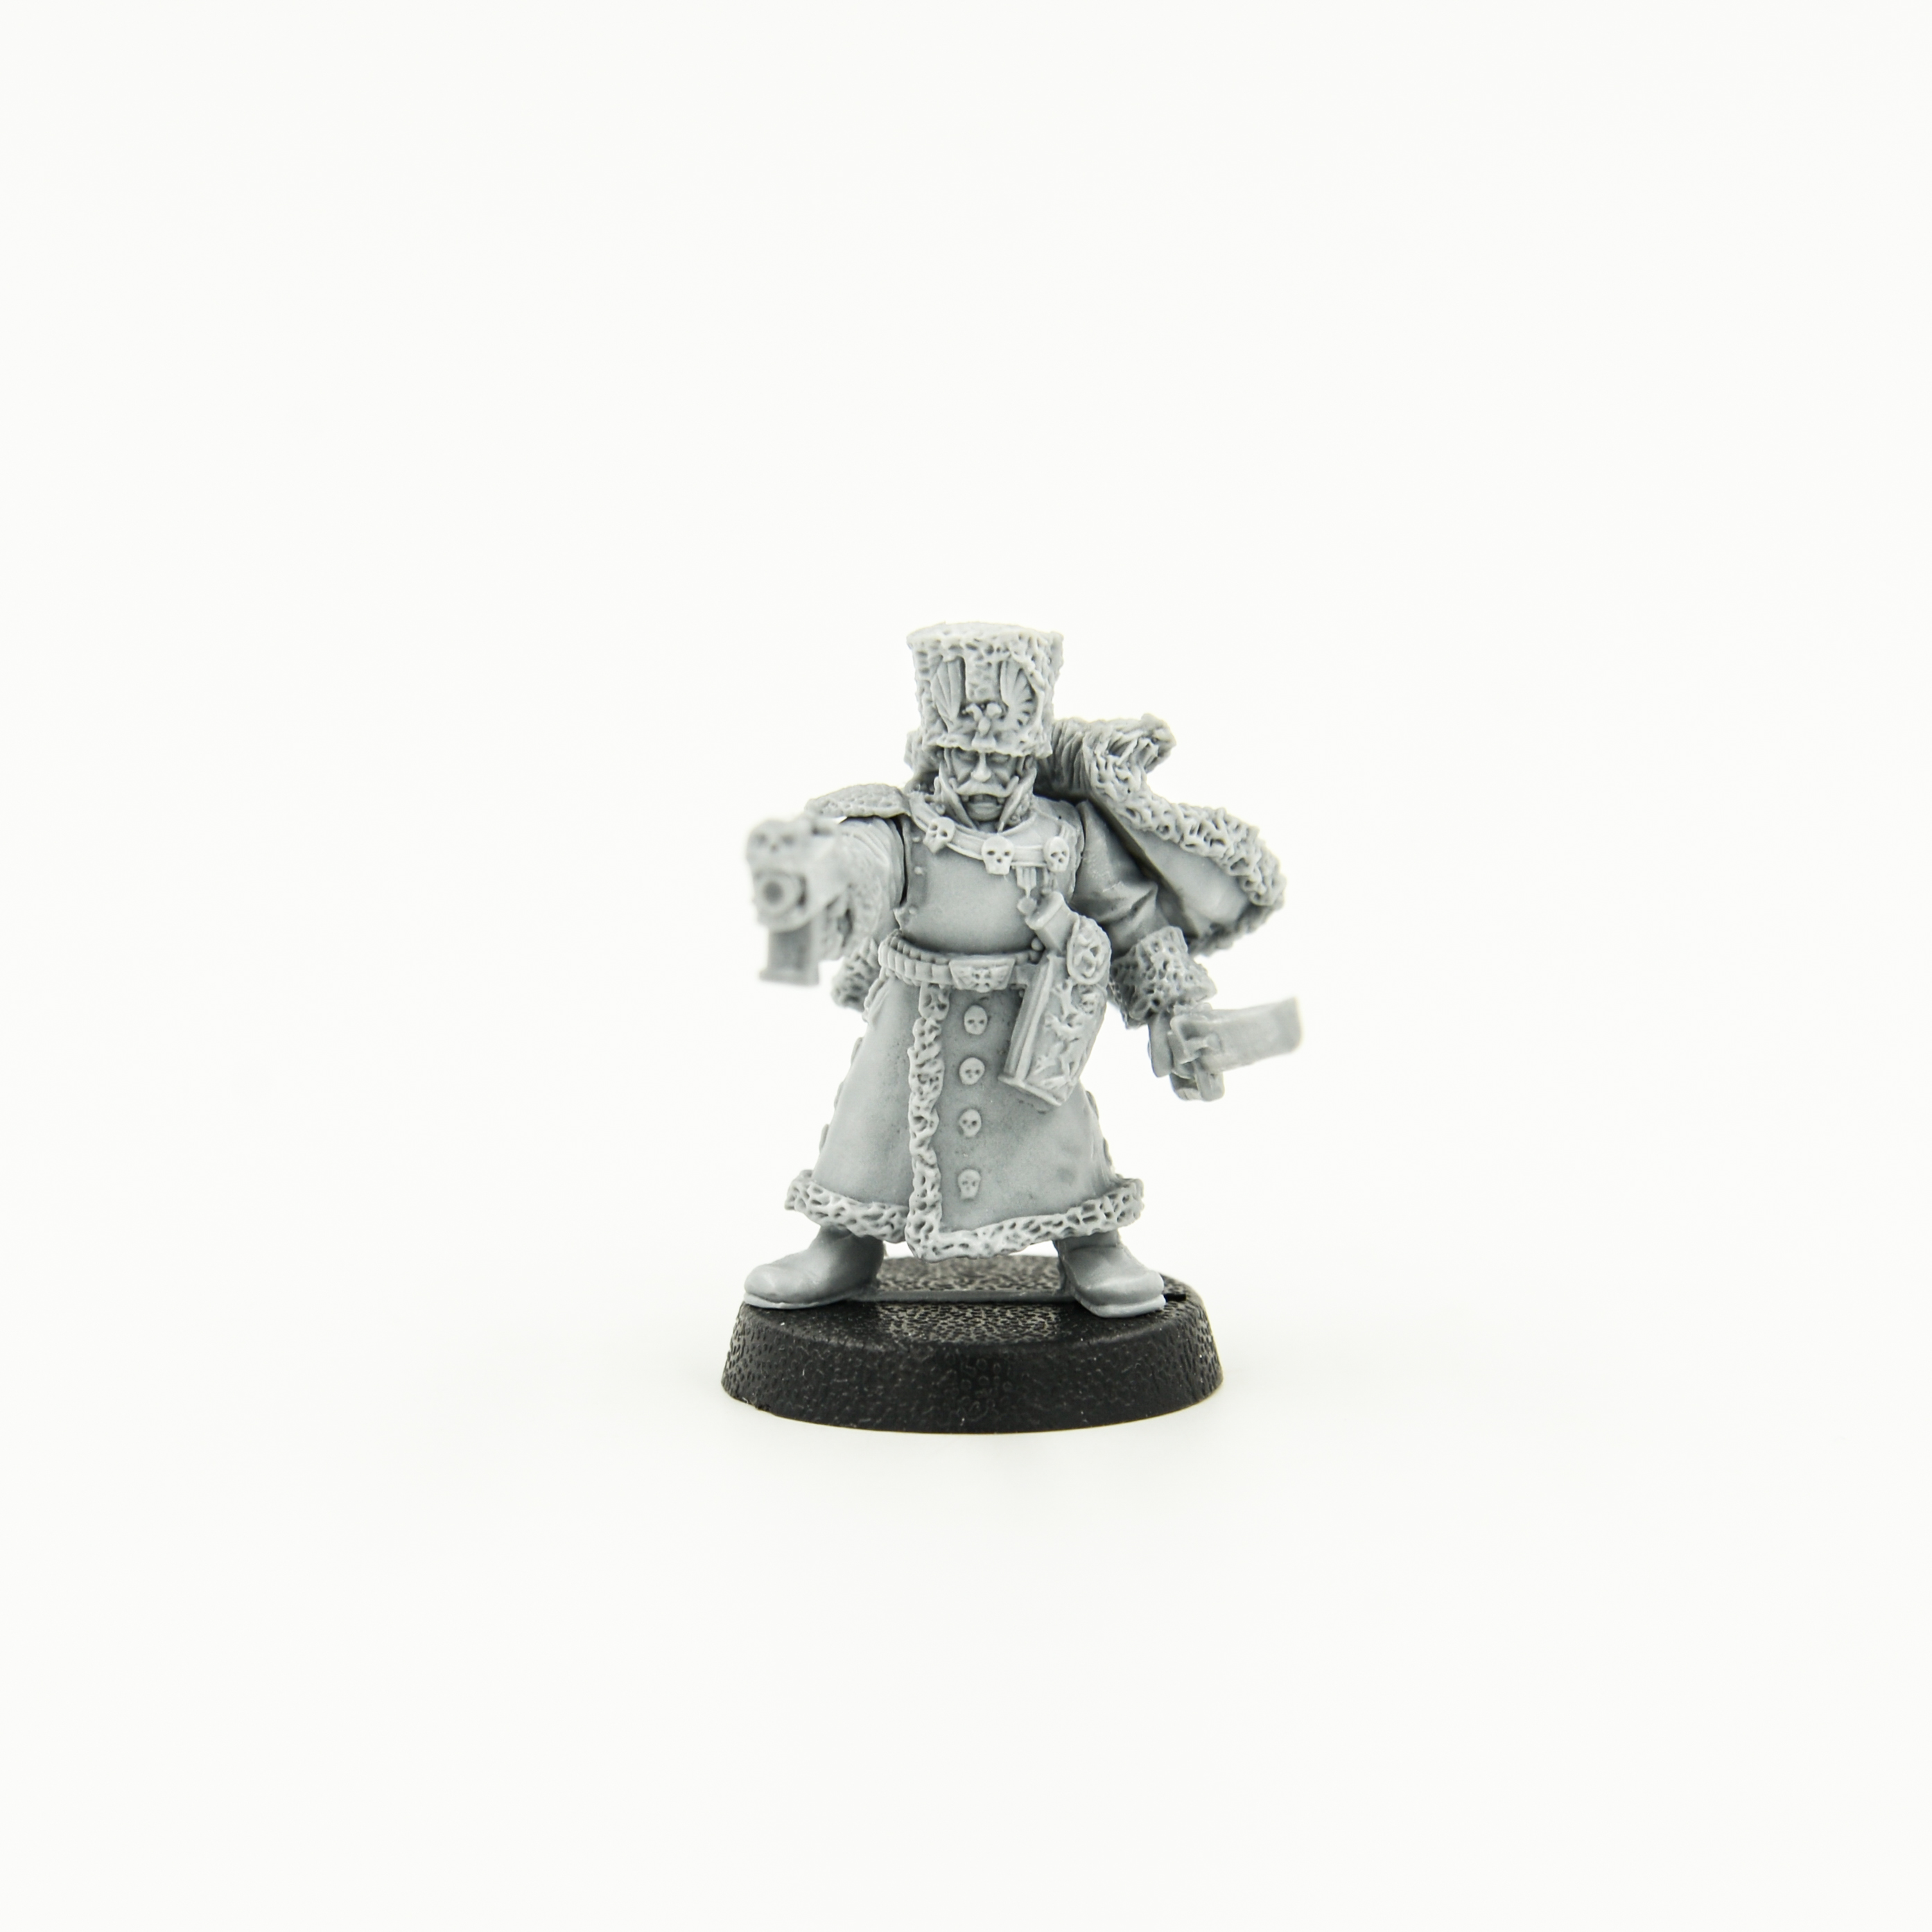 Commander kubrik chenkov - Commander catalogue ampm ...